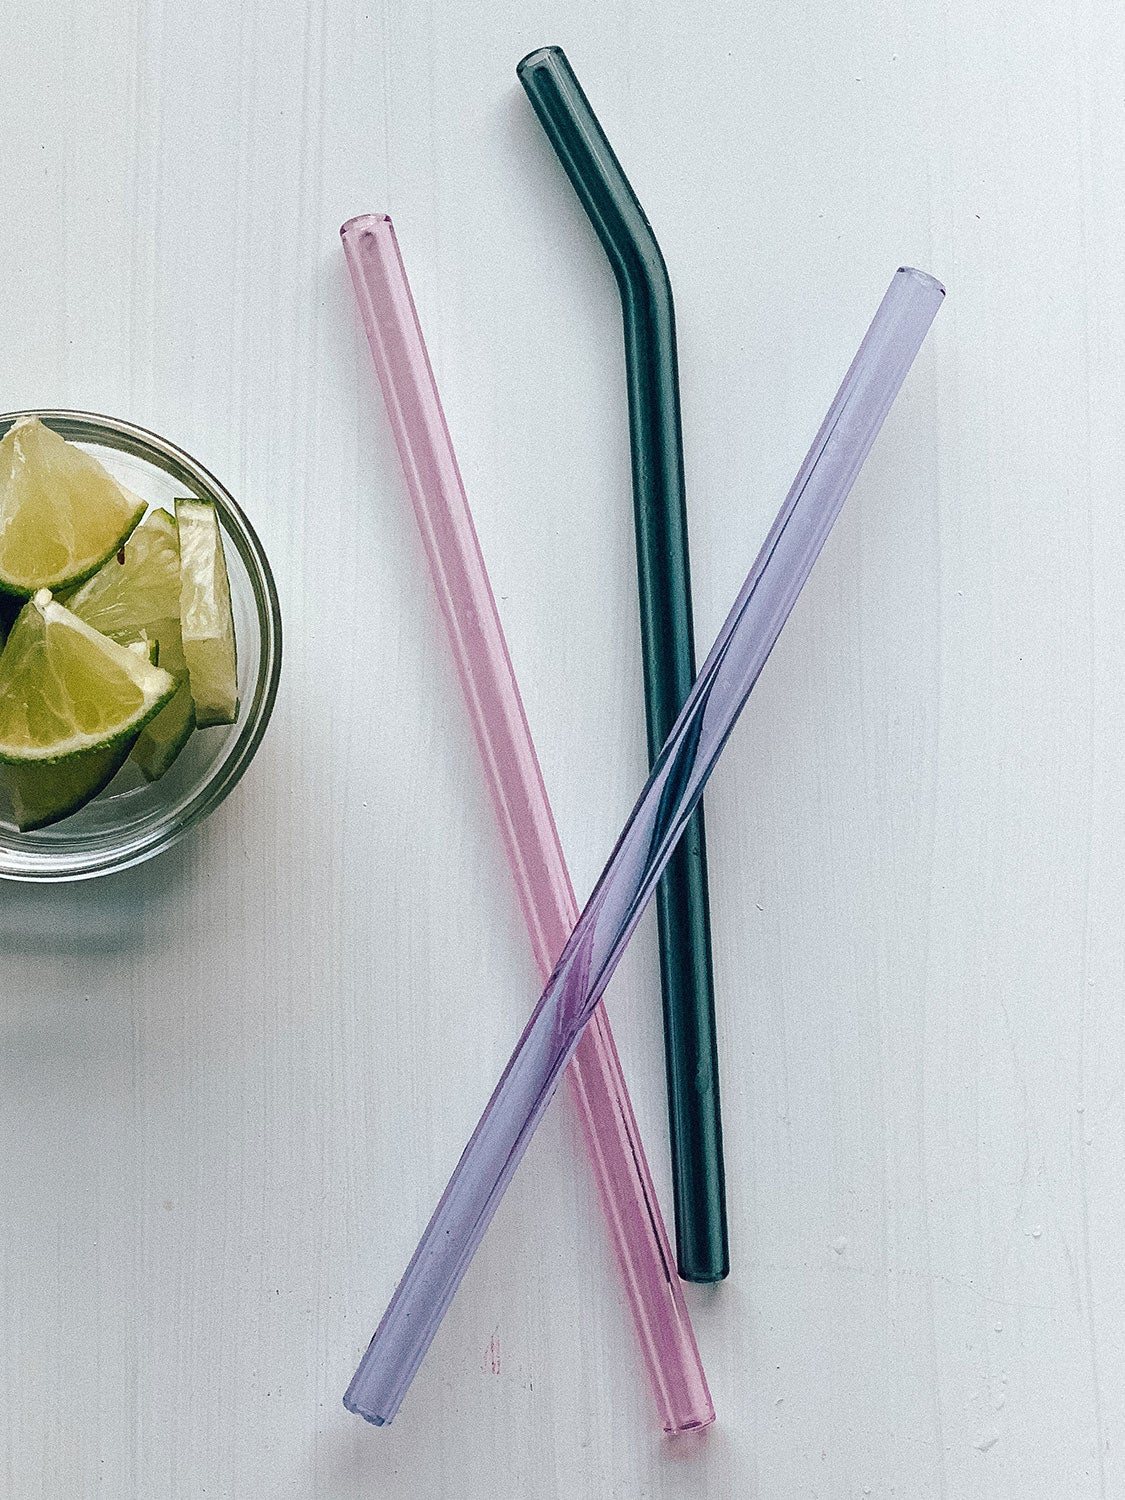 SIMPLY STRAWS Clear Yellow Glass Straw Brush Case Set, 1 EA